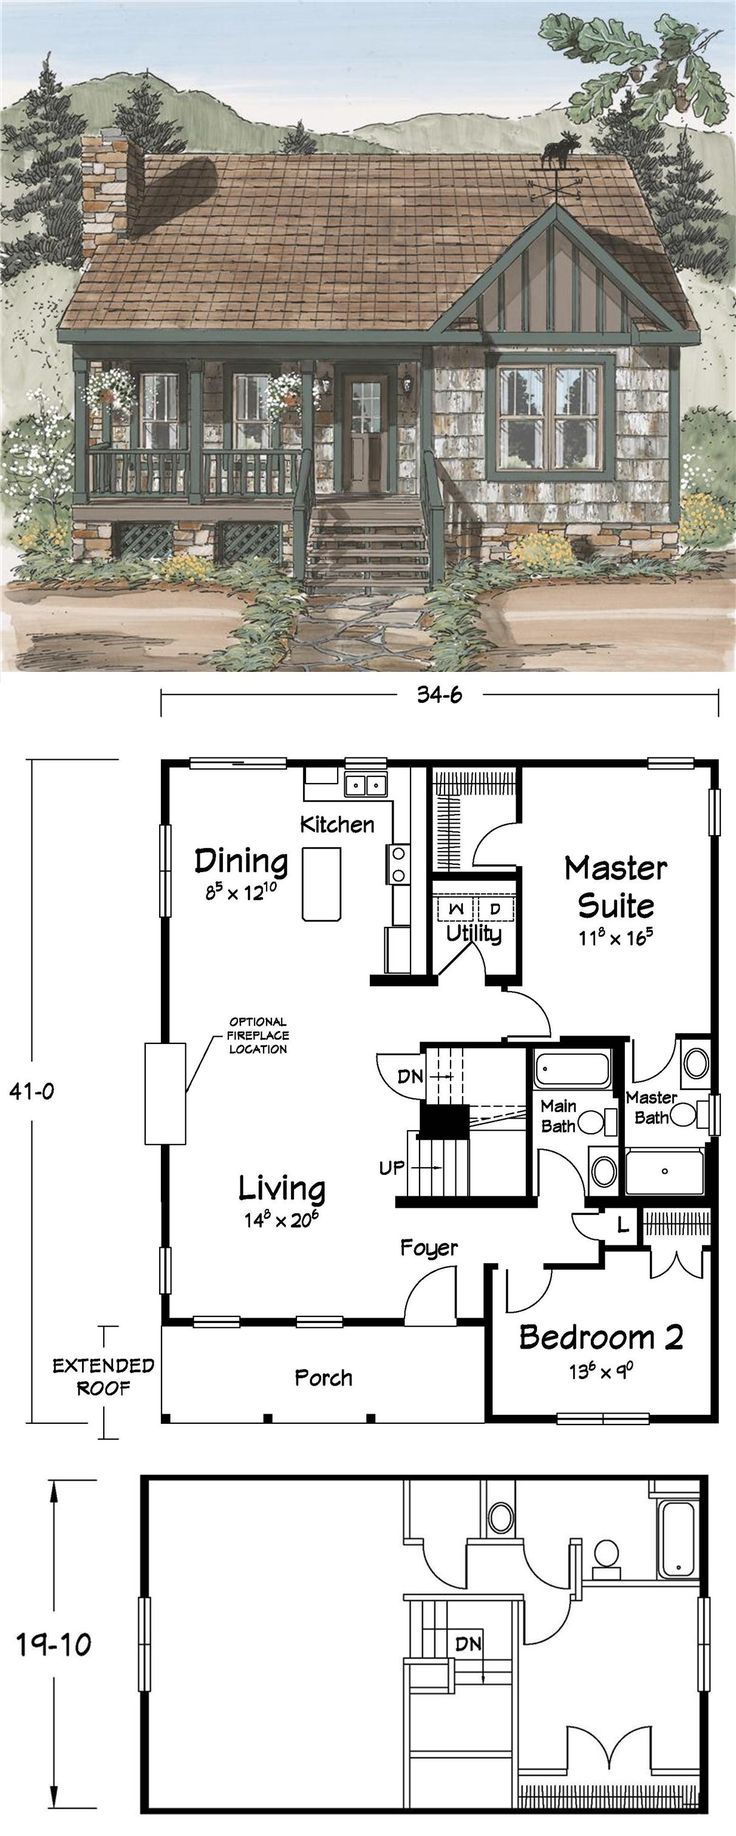 Cute floor plans tiny homes pinterest cabin small for Cabin floor plans